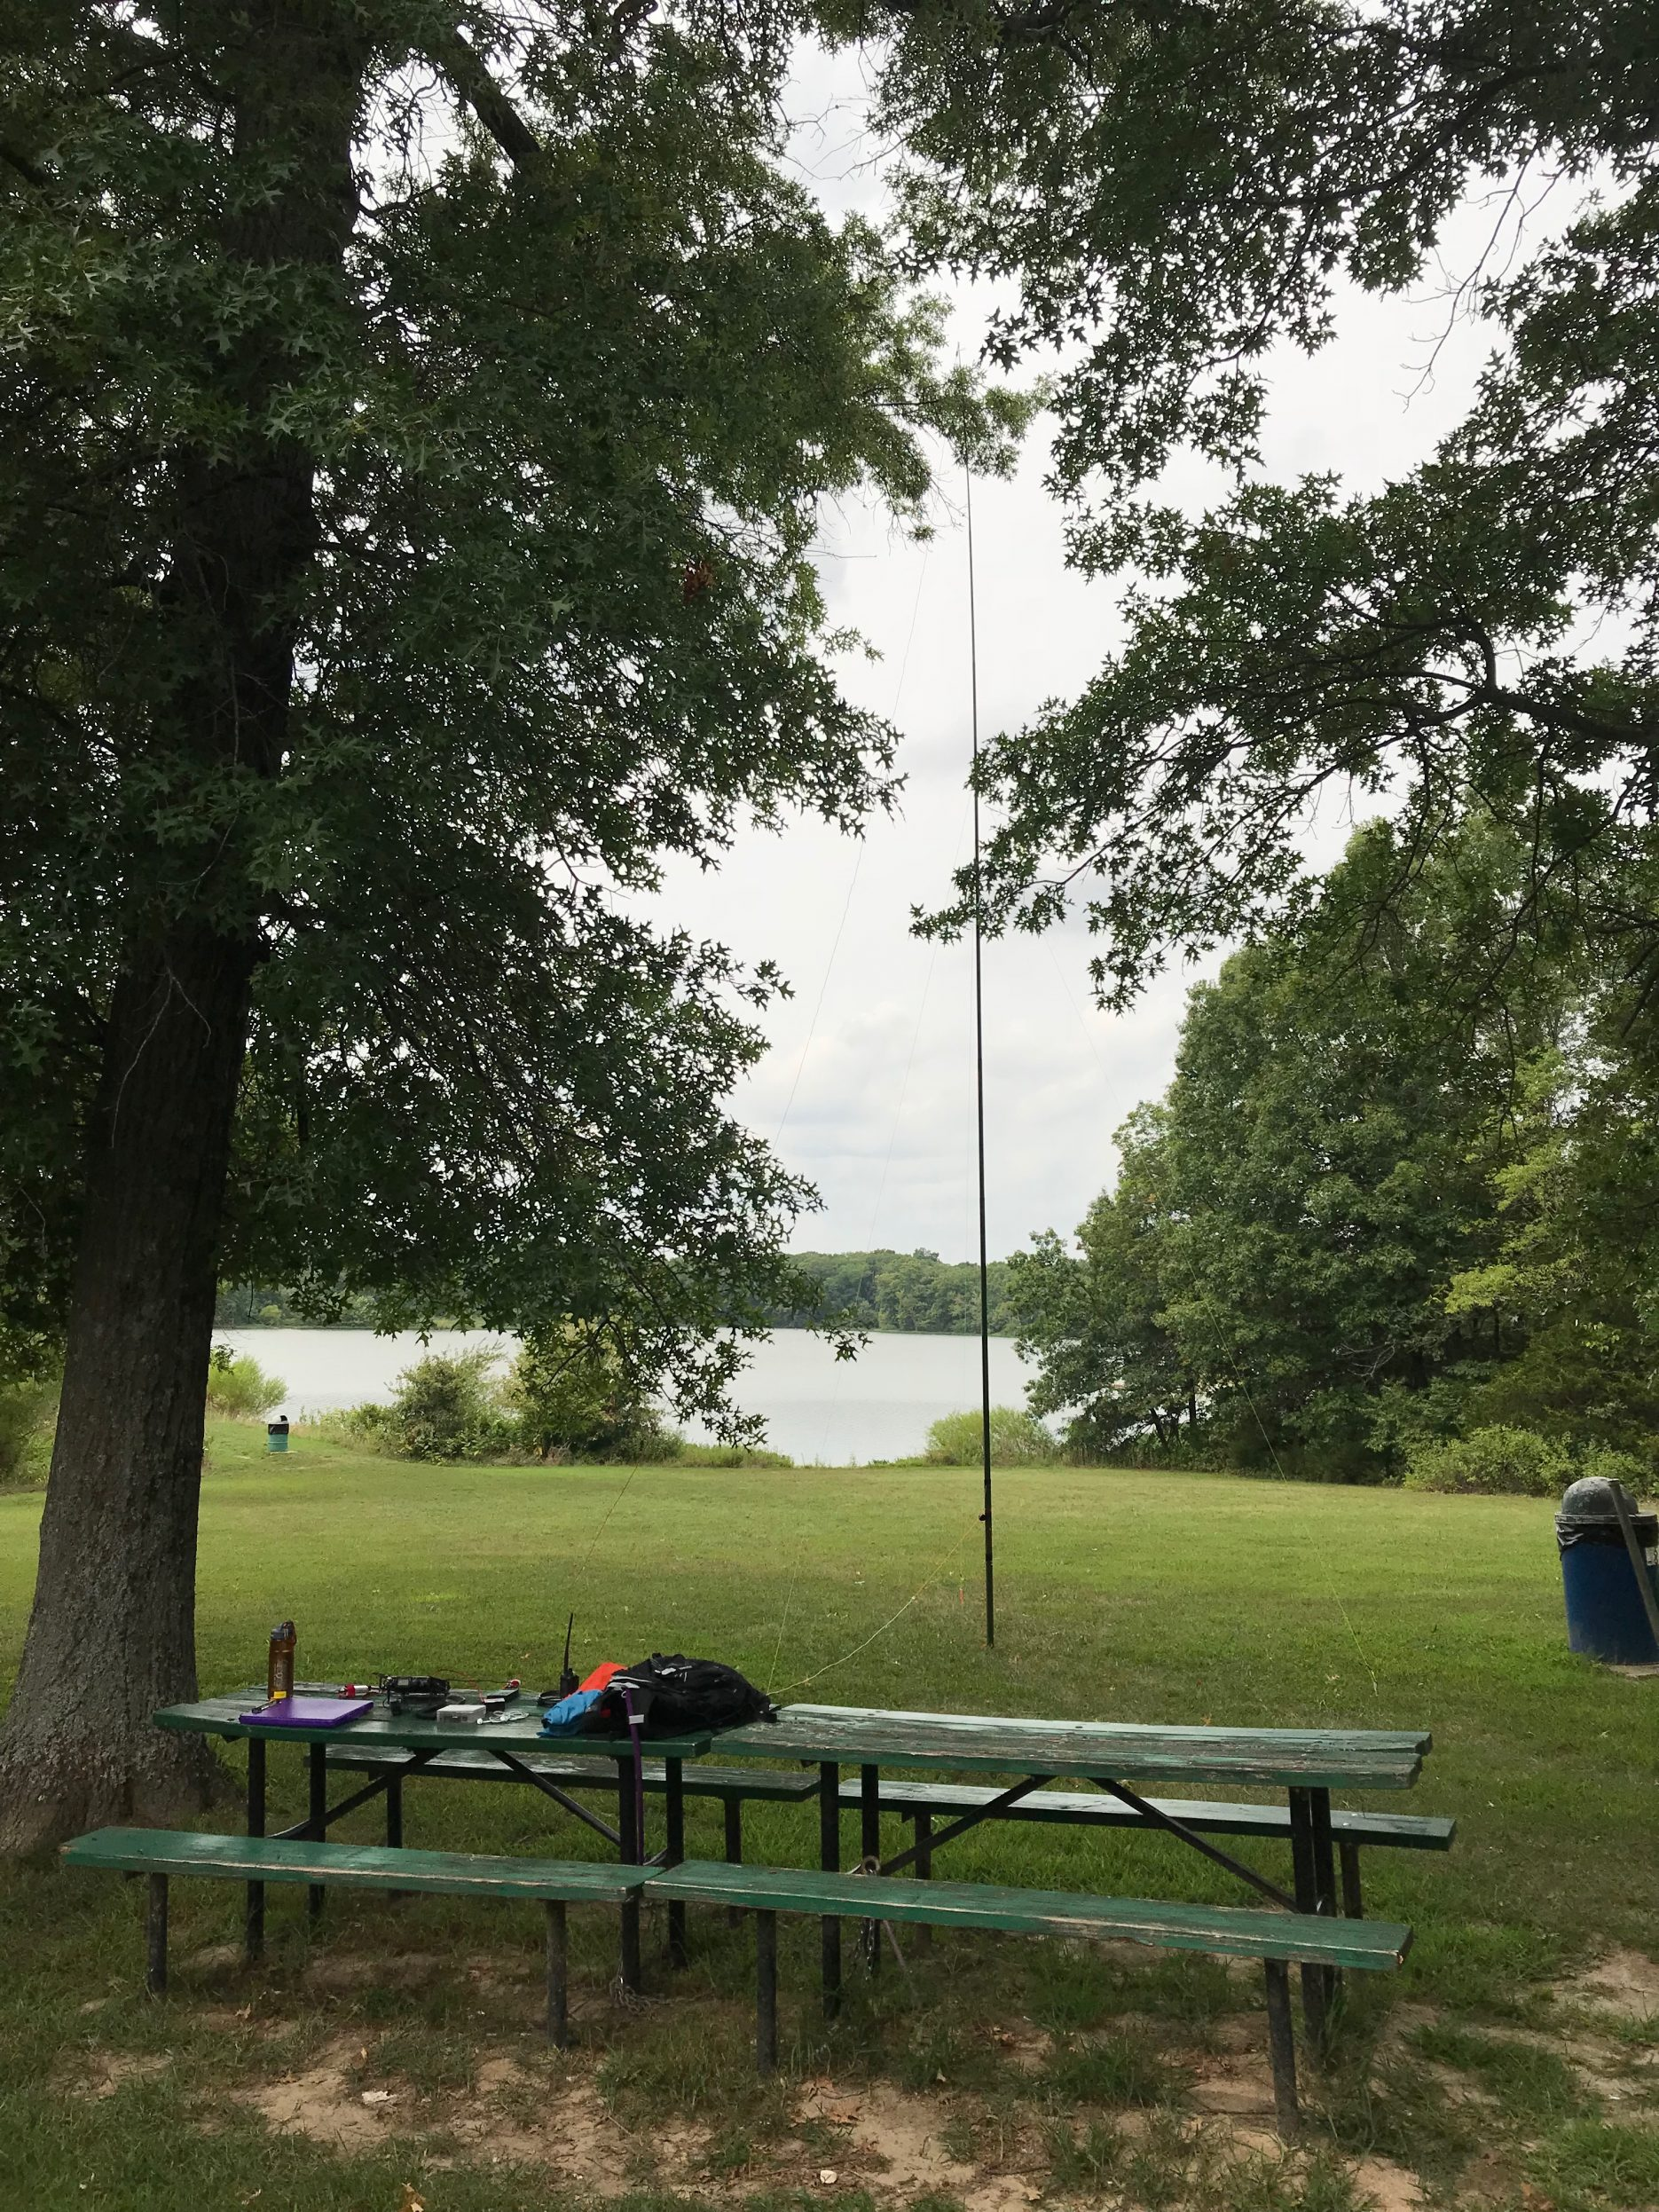 amateur radio in the field